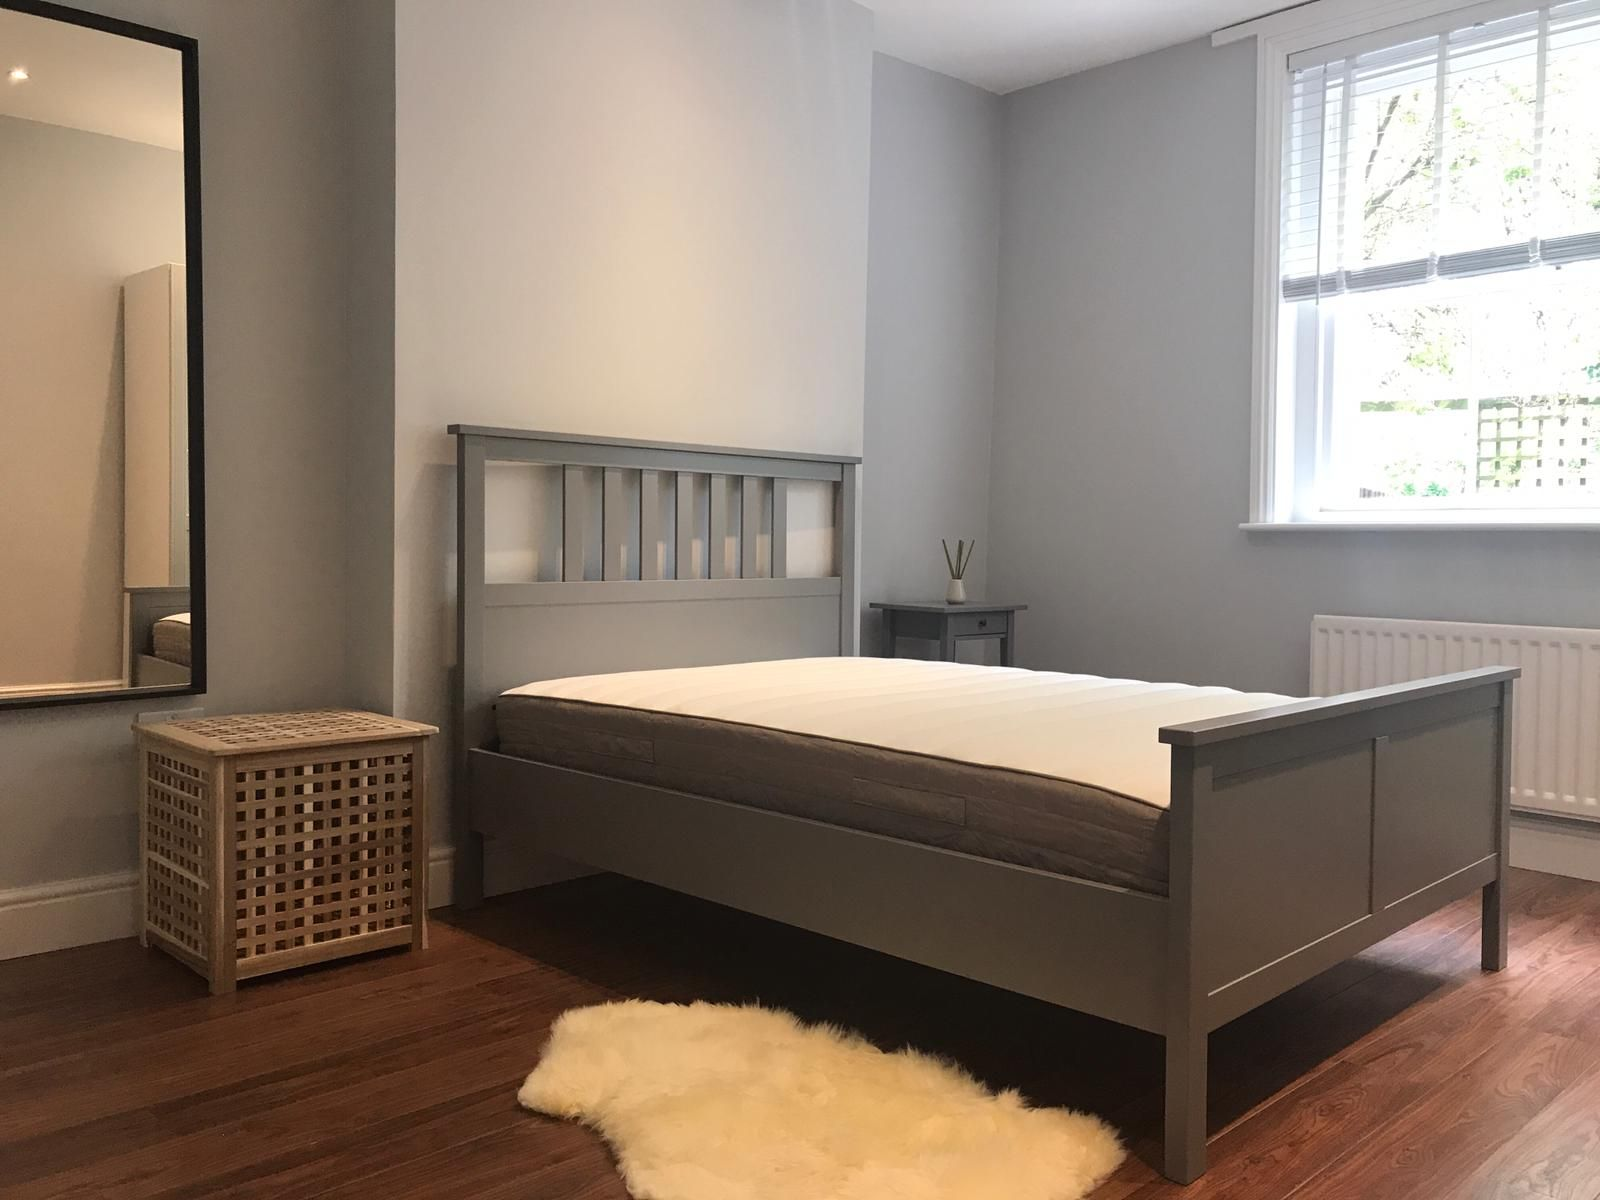 2 bedroom flat flat/apartment To Let in London - Bedroom 1/Laminated floors